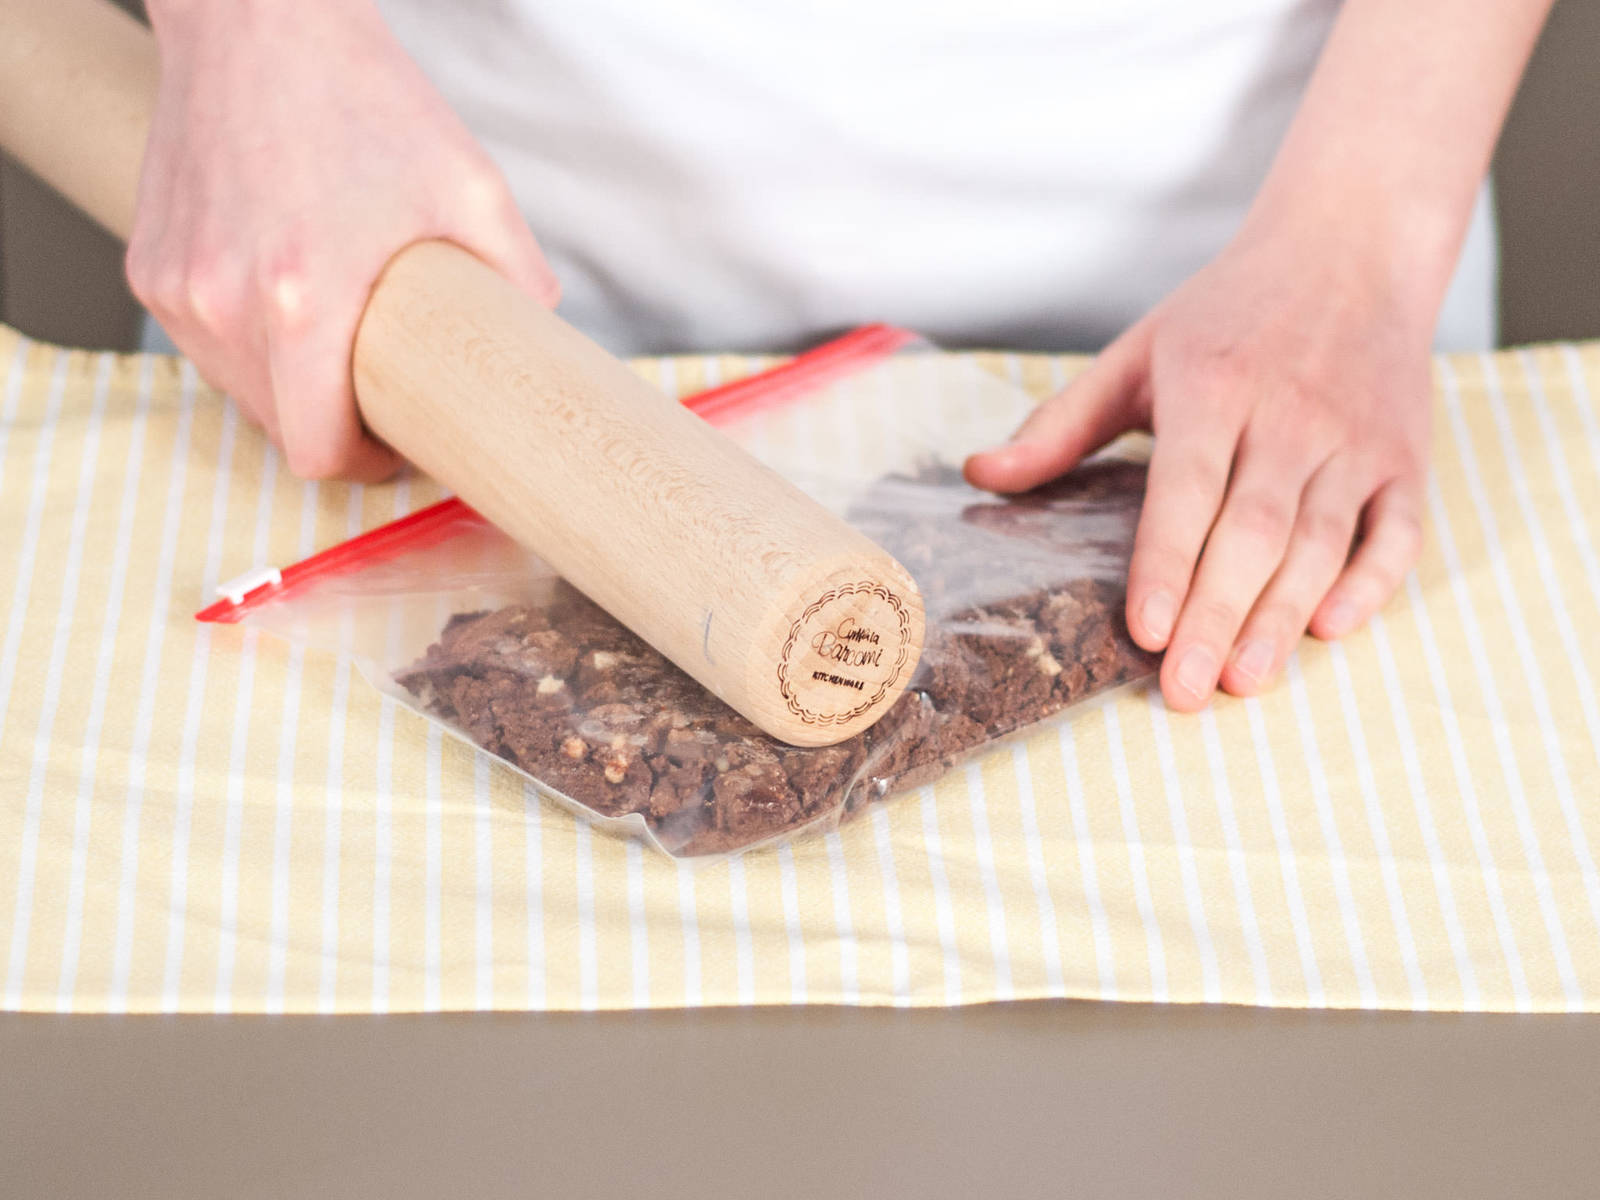 Place cookies into a freezer bag. Tightly seal bag and crush cookies with a rolling pin.